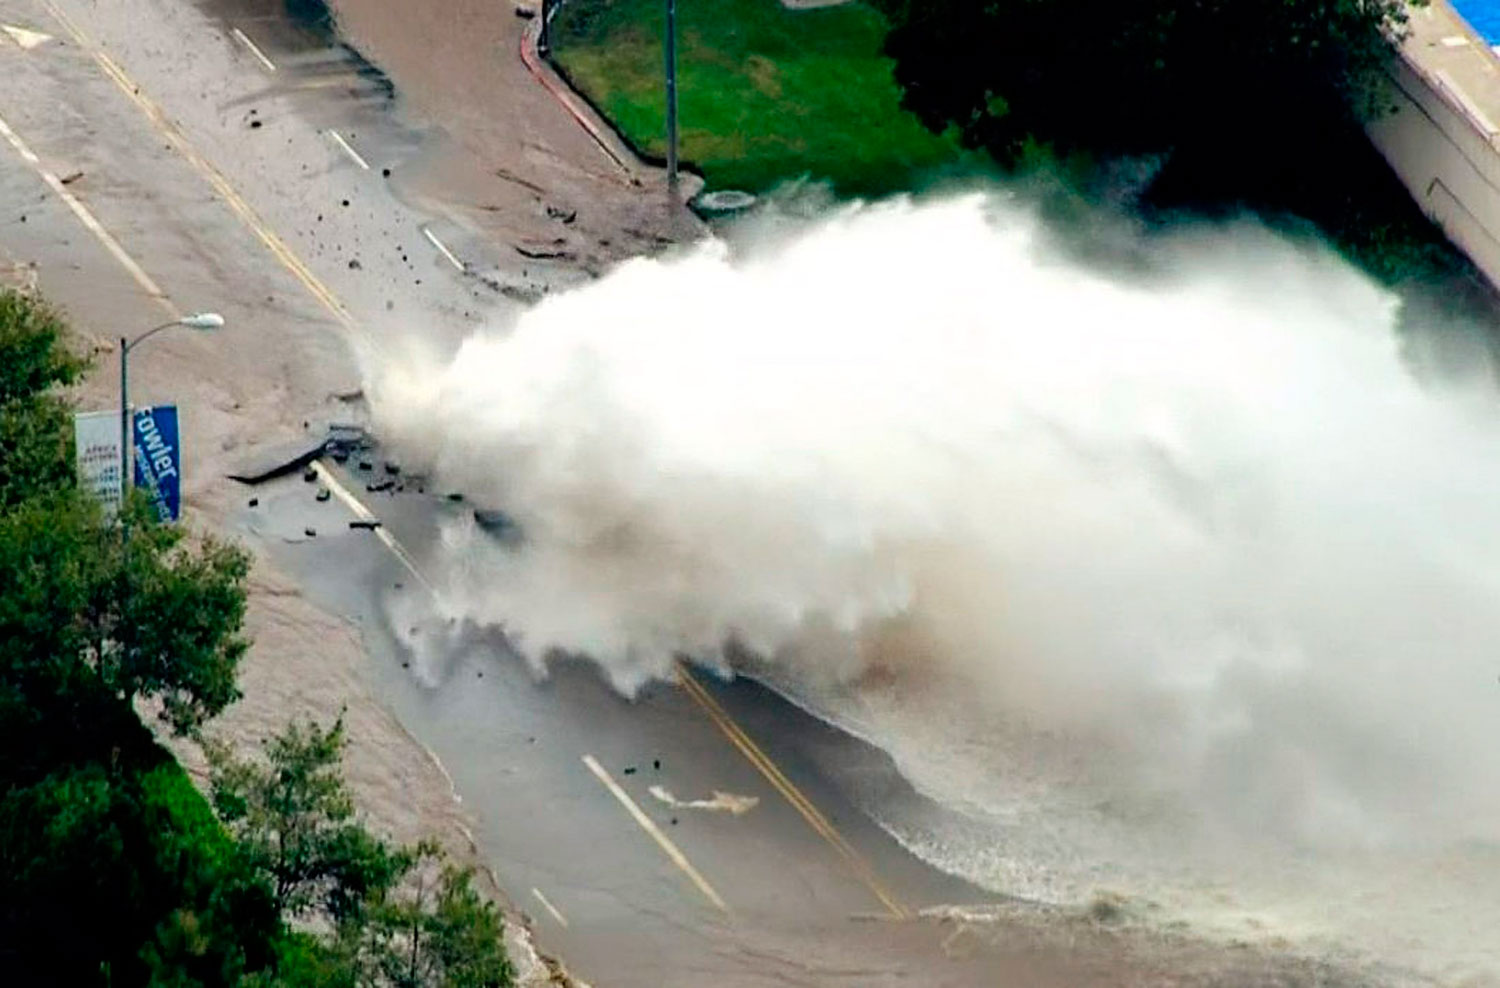 Water gushes from a broken water main on Sunset Boulevard on the UCLA campus in Los Angeles July 29, 2014 in this still image from aerial video from NBCLA.com.